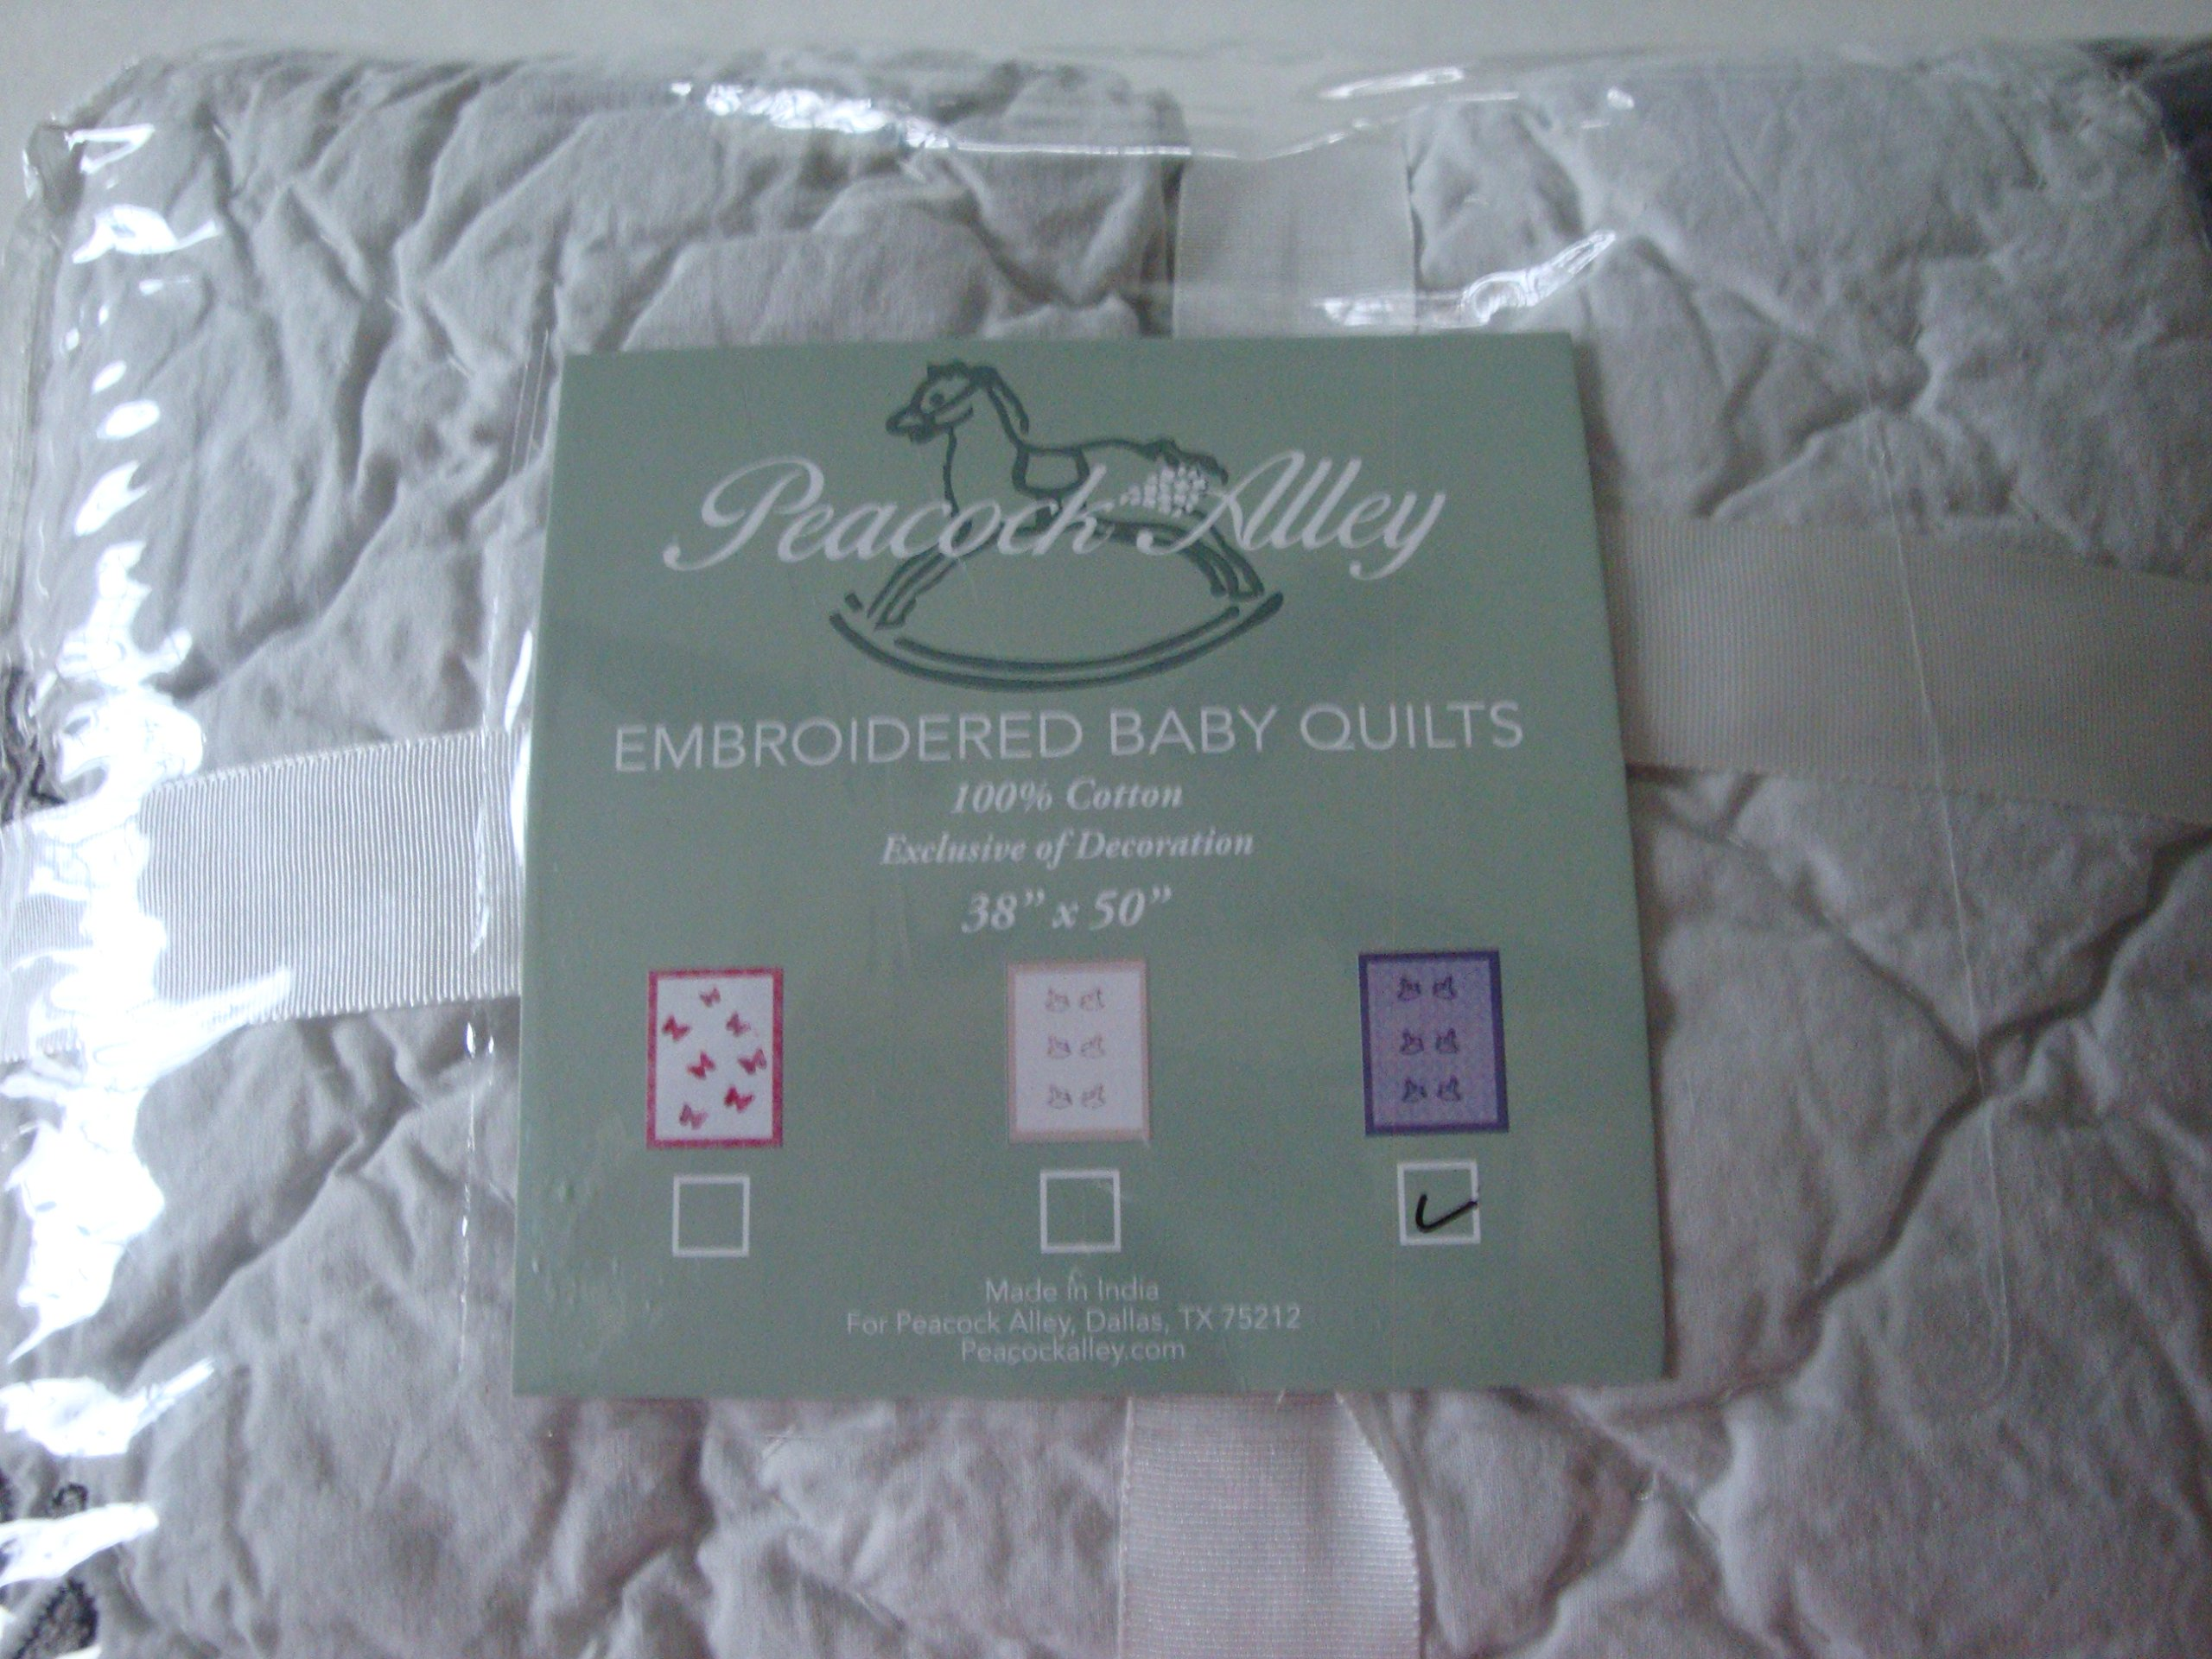 Peacock Alley Grey Rocking Horse 100% Cotton Embroidered Baby Quilt